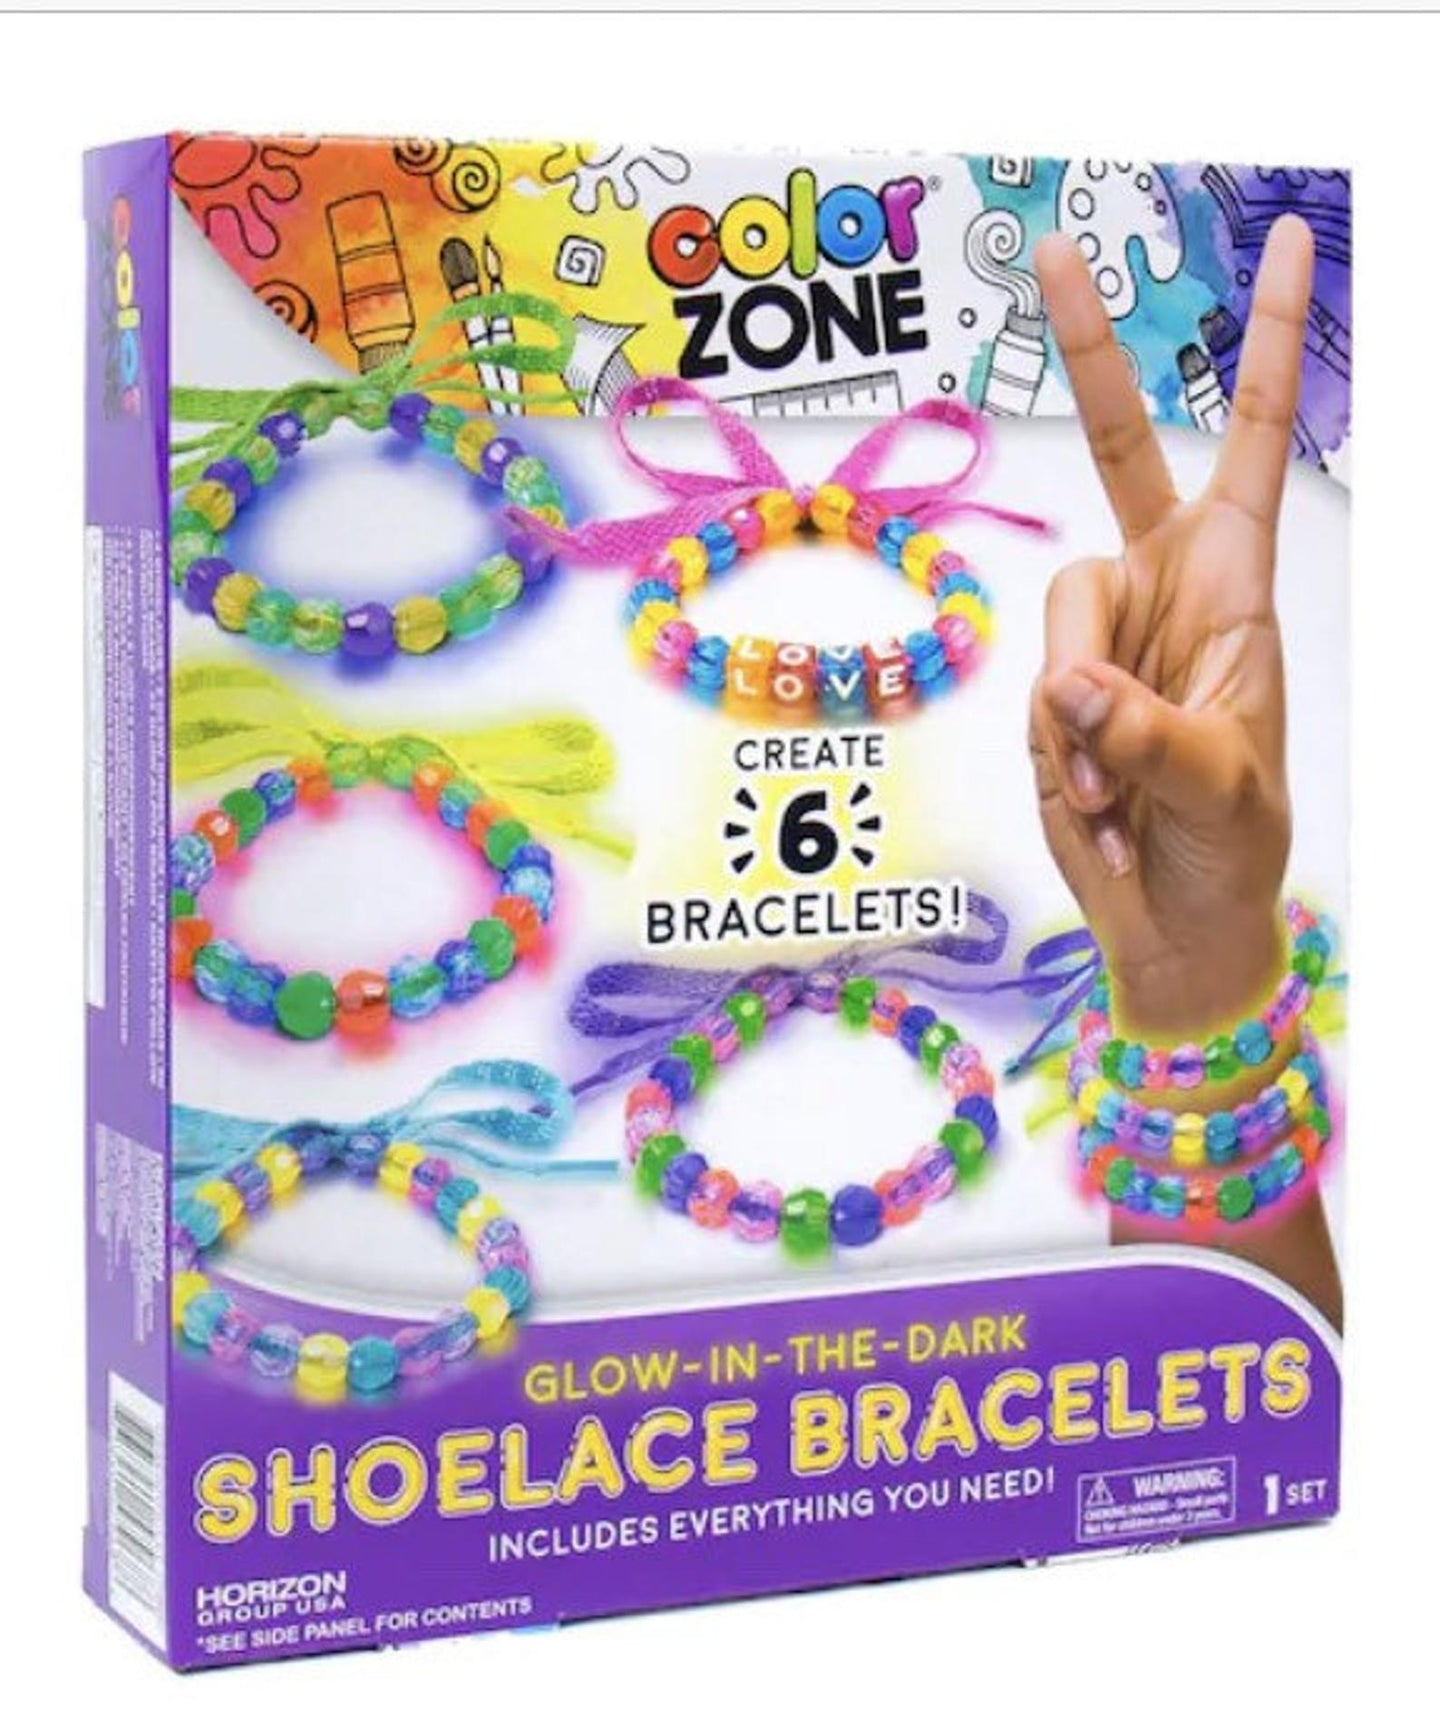 Just My Style Color-Zone Glow-in-the-Dark Shoelace Bracelet Kit